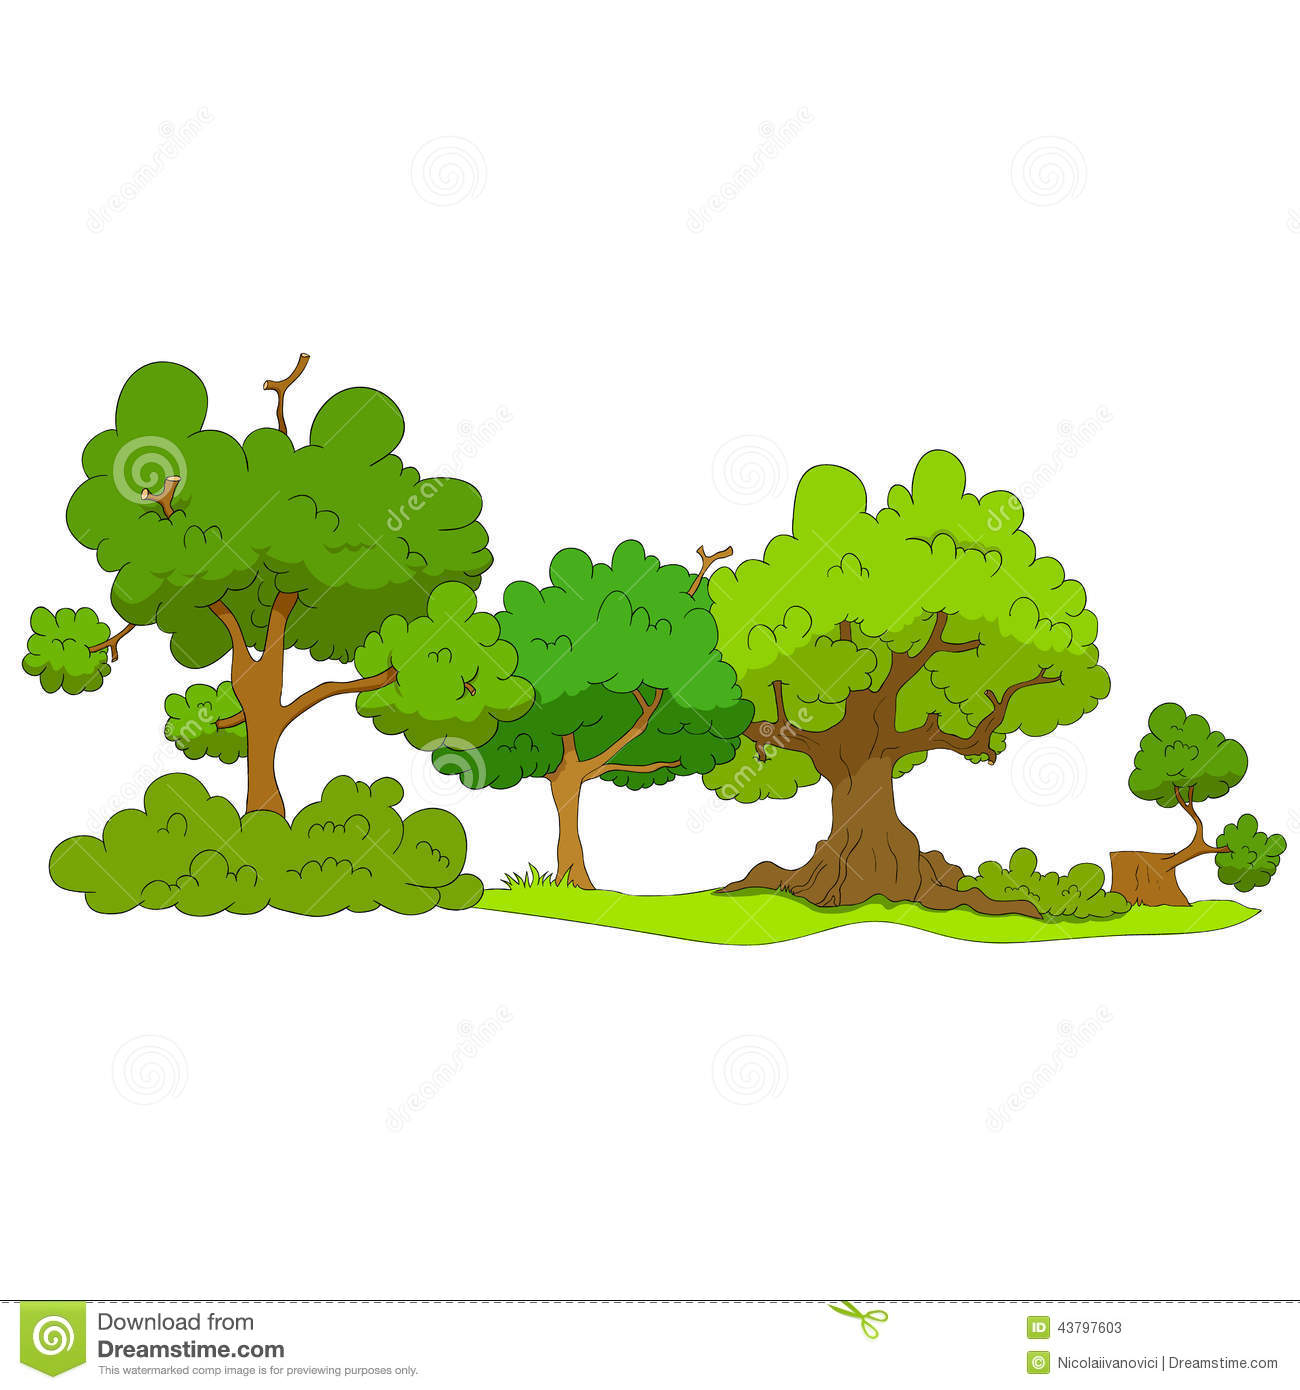 Cartoon Forest Stock Vector - Image: 43797603